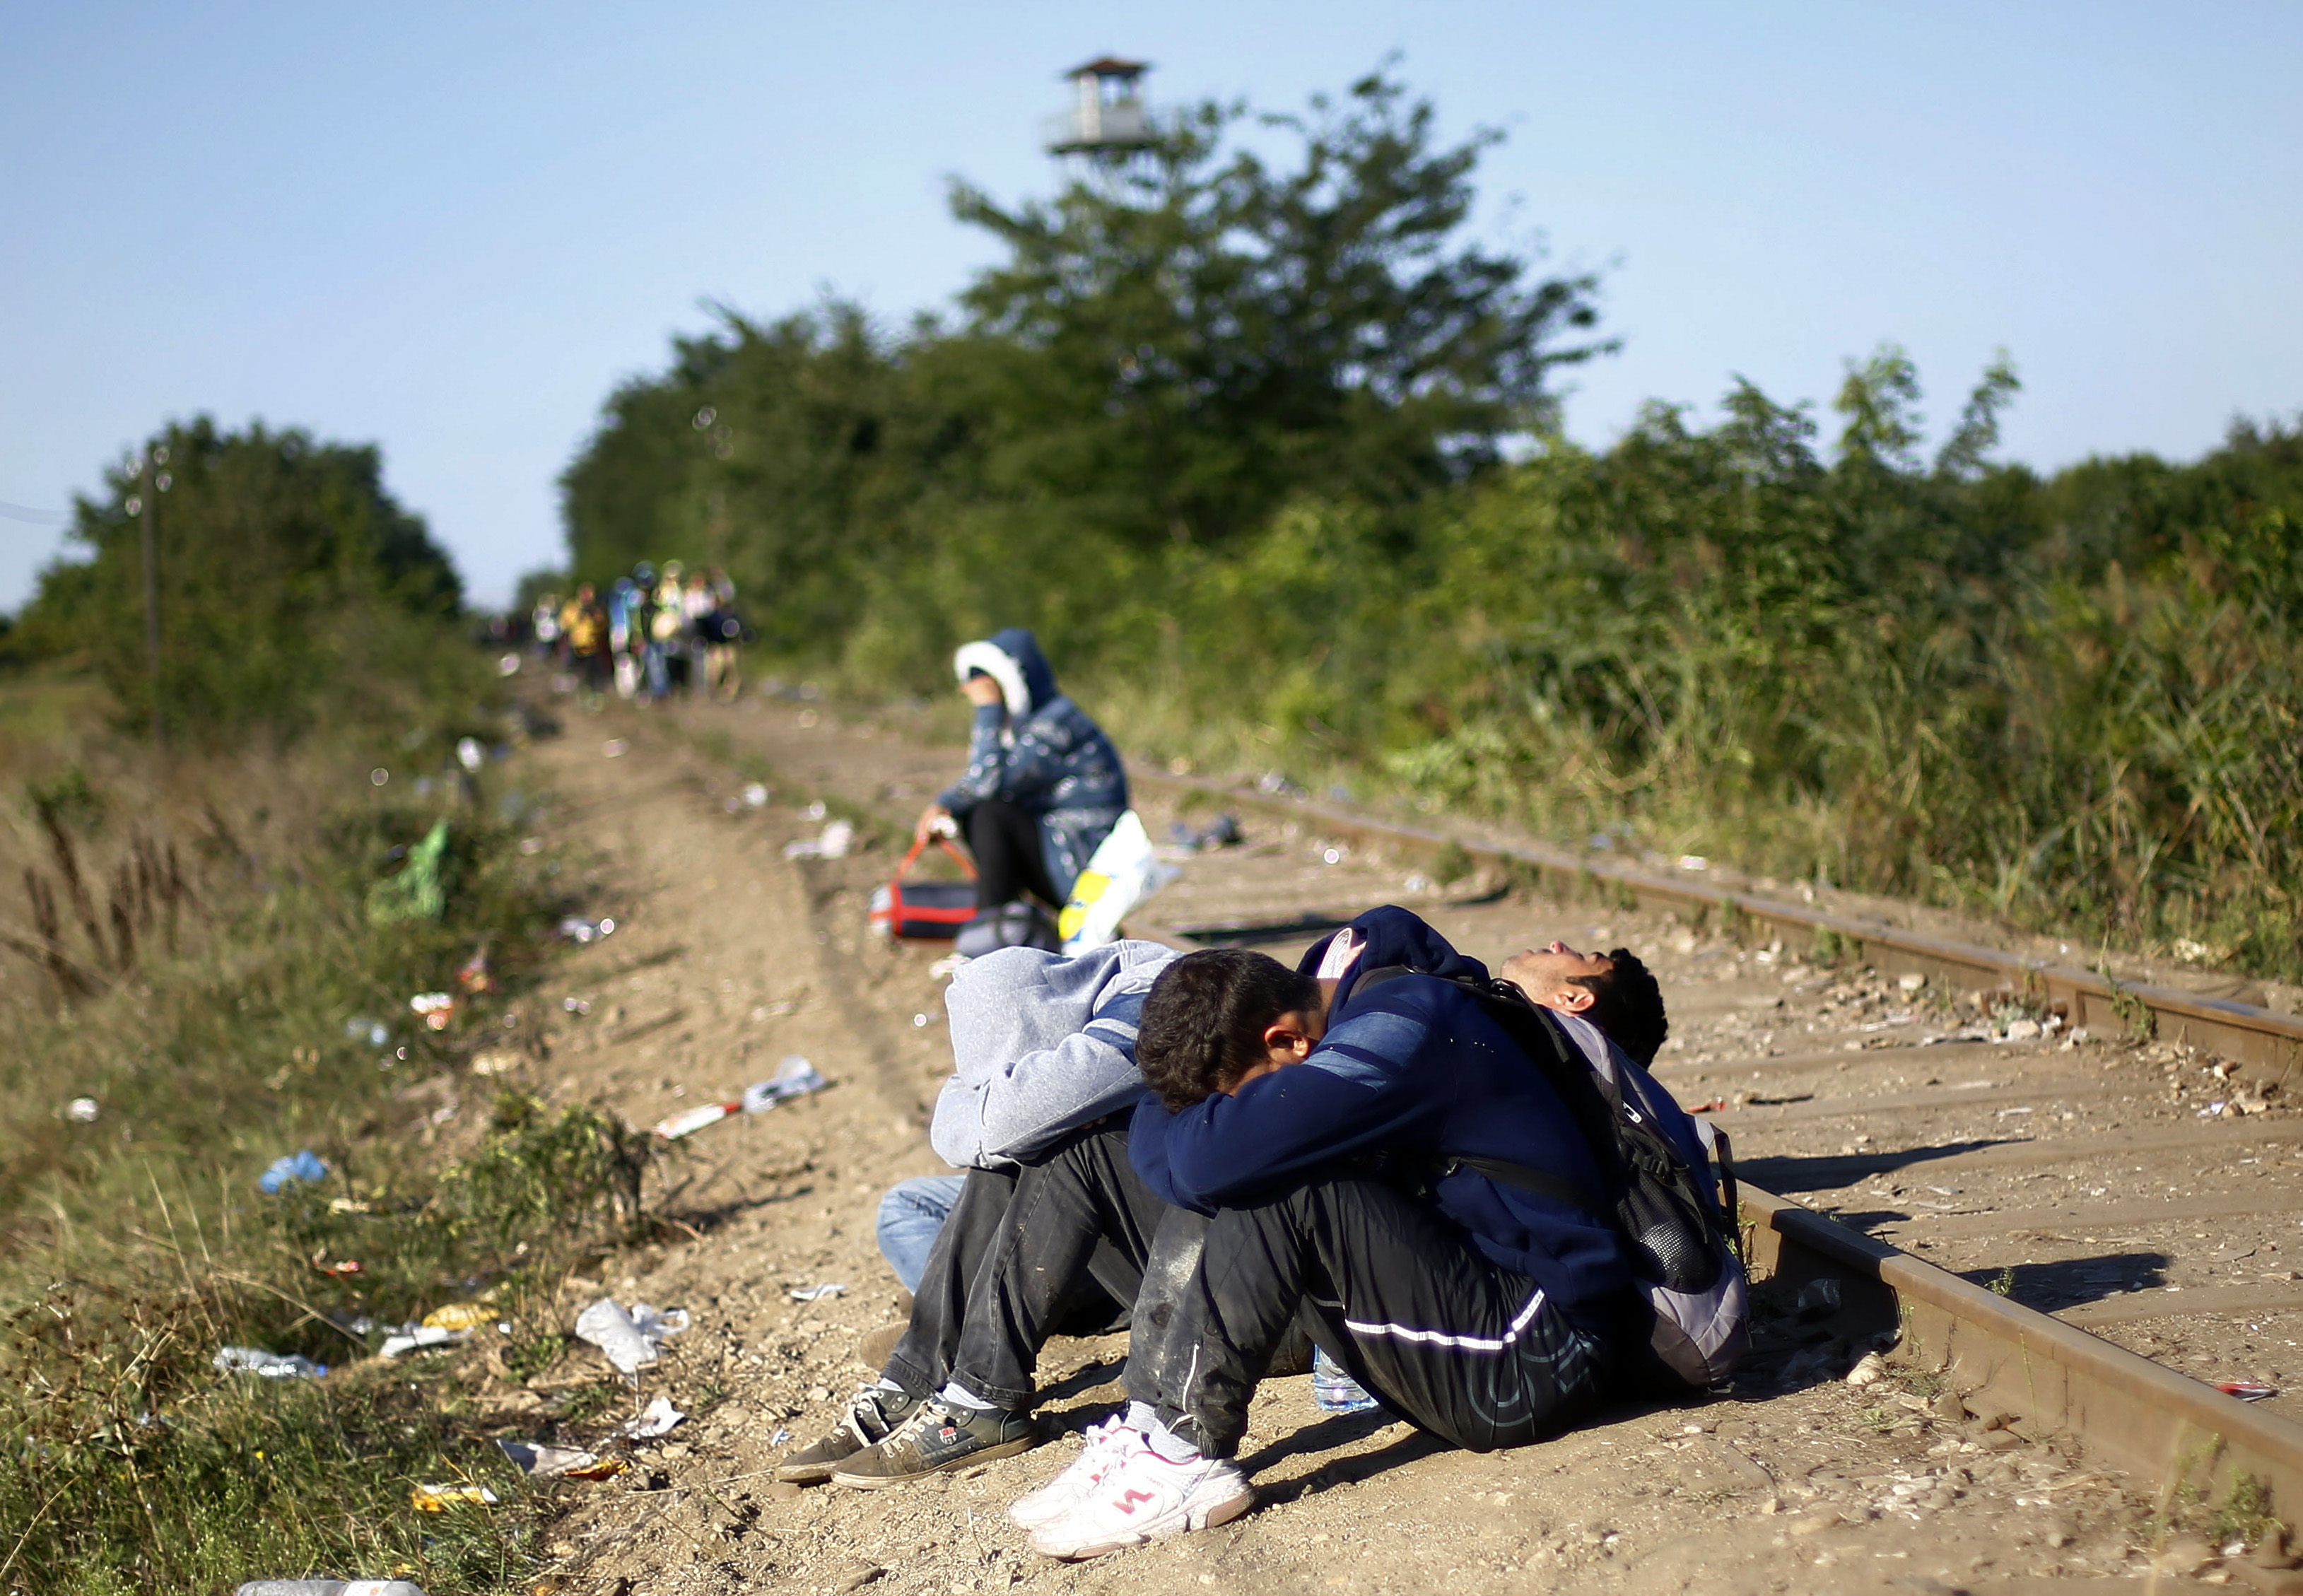 Migrants rest by the railway track near Roszke, southern Hungary, Wednesday, Sept. 9, 2015. Migrants anxious to pass through Hungary towards central Europe are making their way on foot at Hungary's southern border with Serbia. Photo: AP